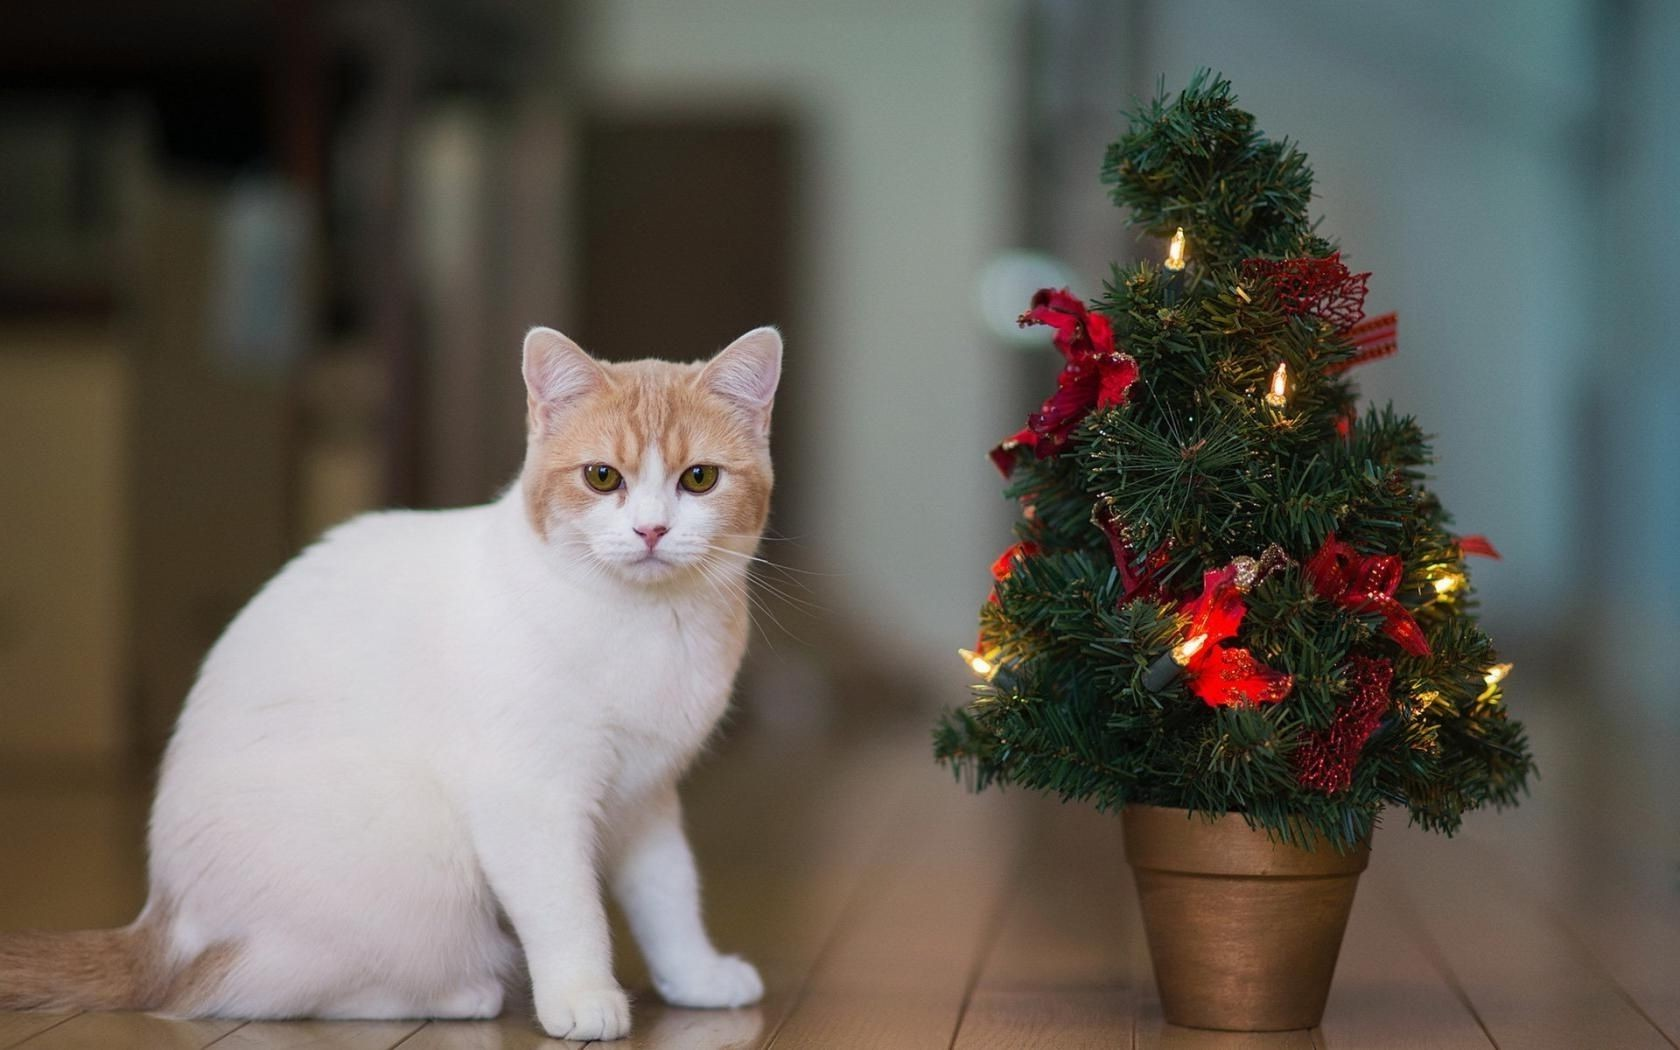 Candles New Year Christmas Tree Cat Desktop Wallpapers For Free